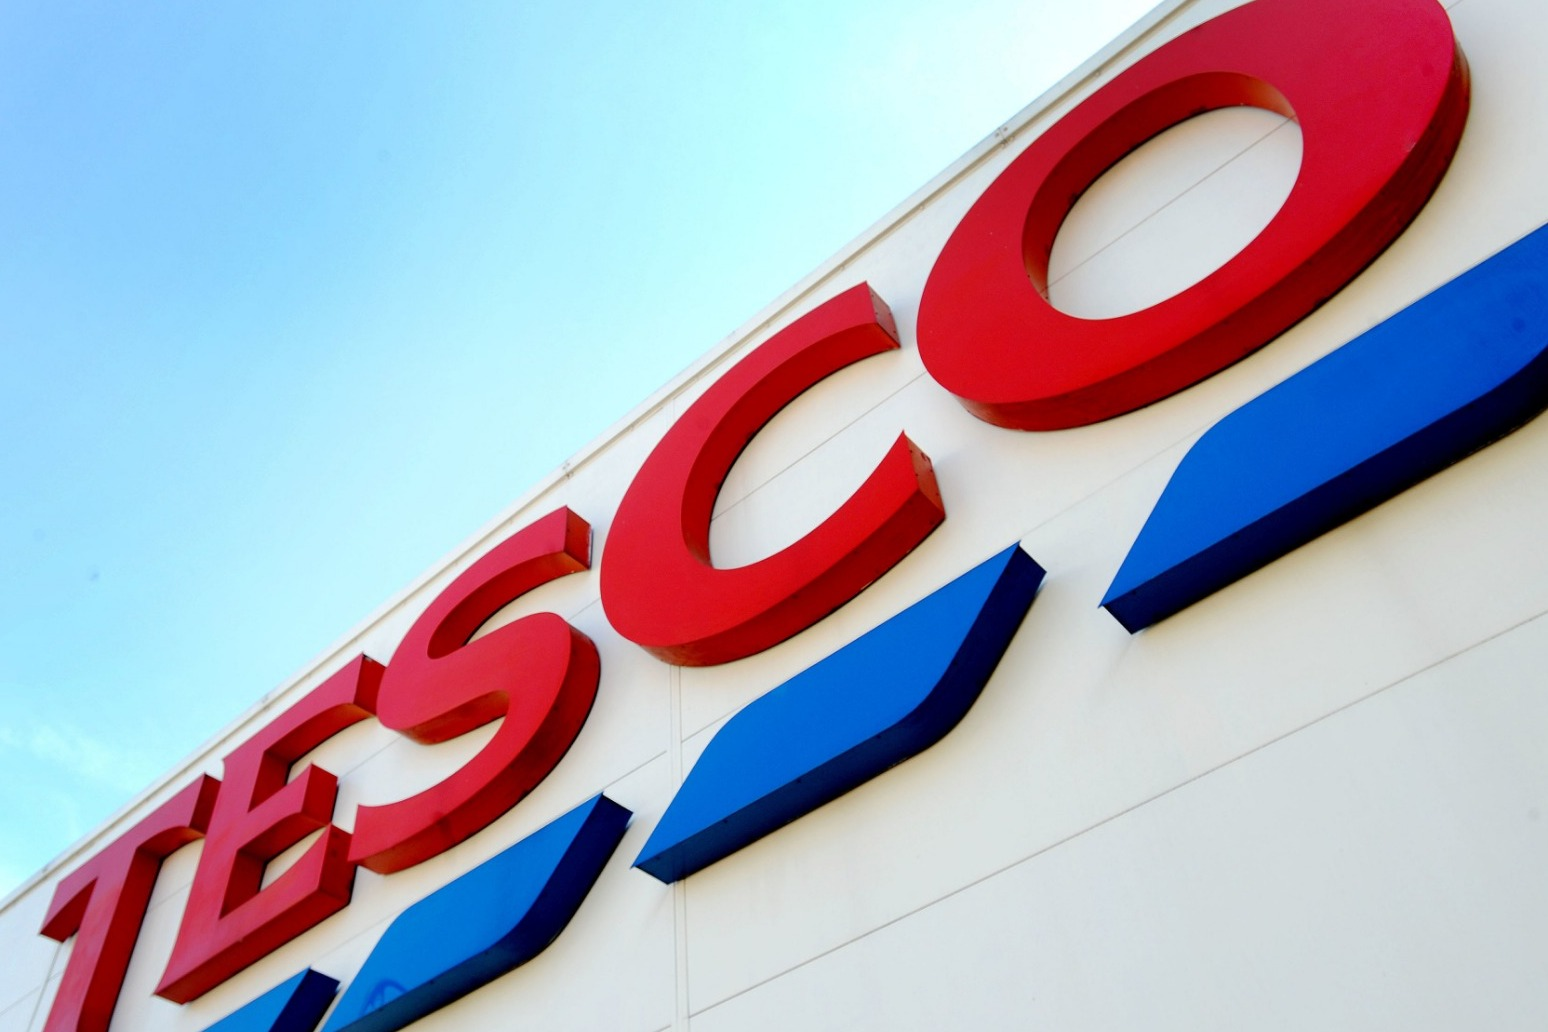 Tesco expected to post positive results amid HGV and labour crisis